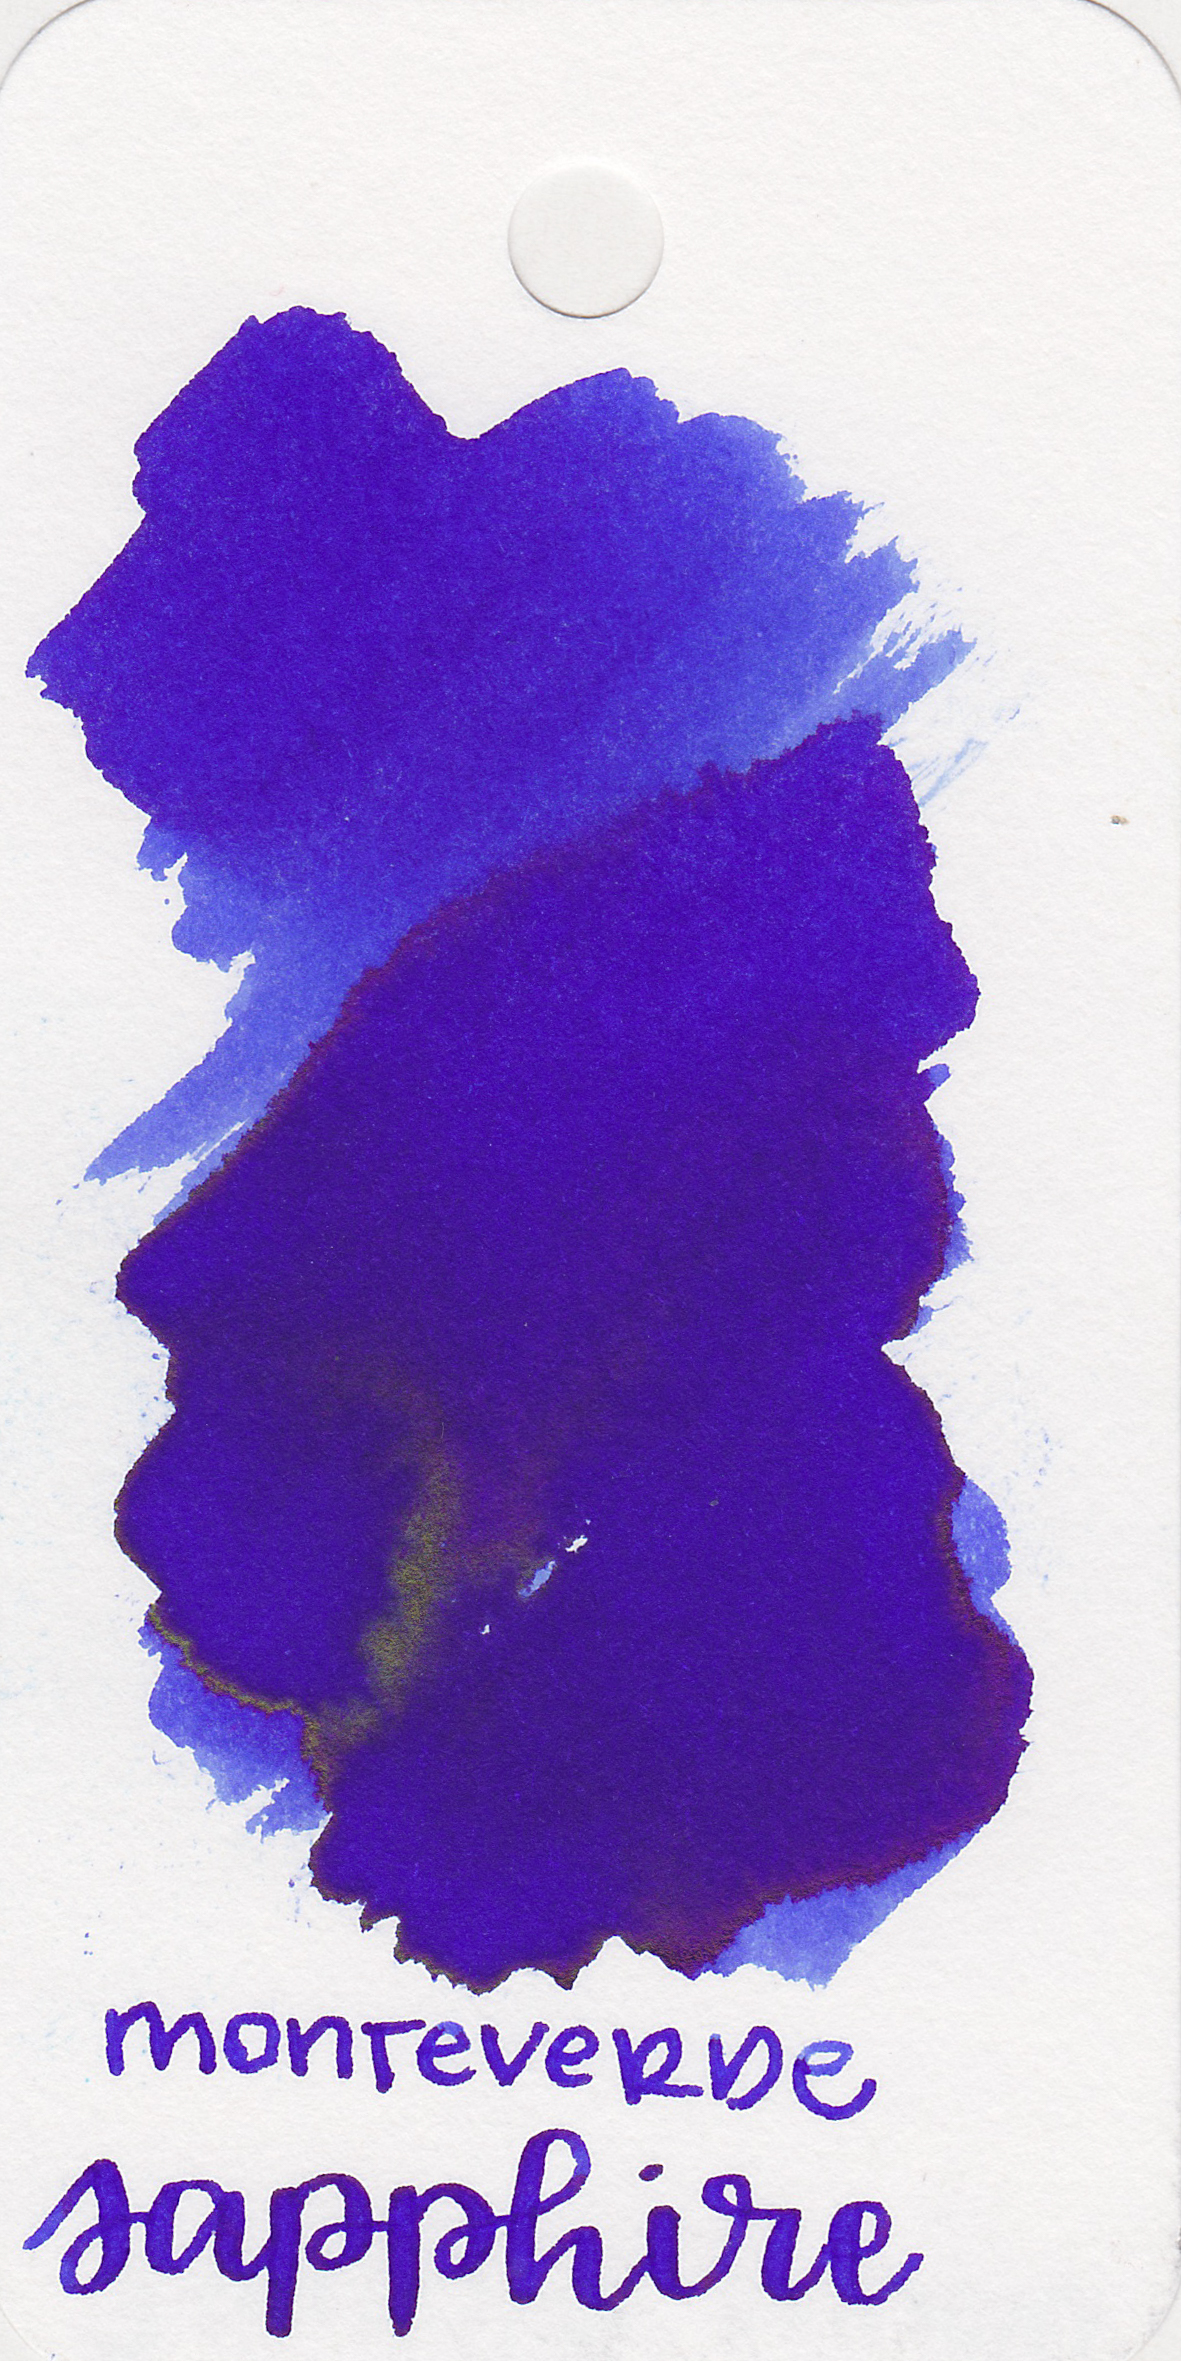 The color: - Sapphire is a beautiful royal blue.